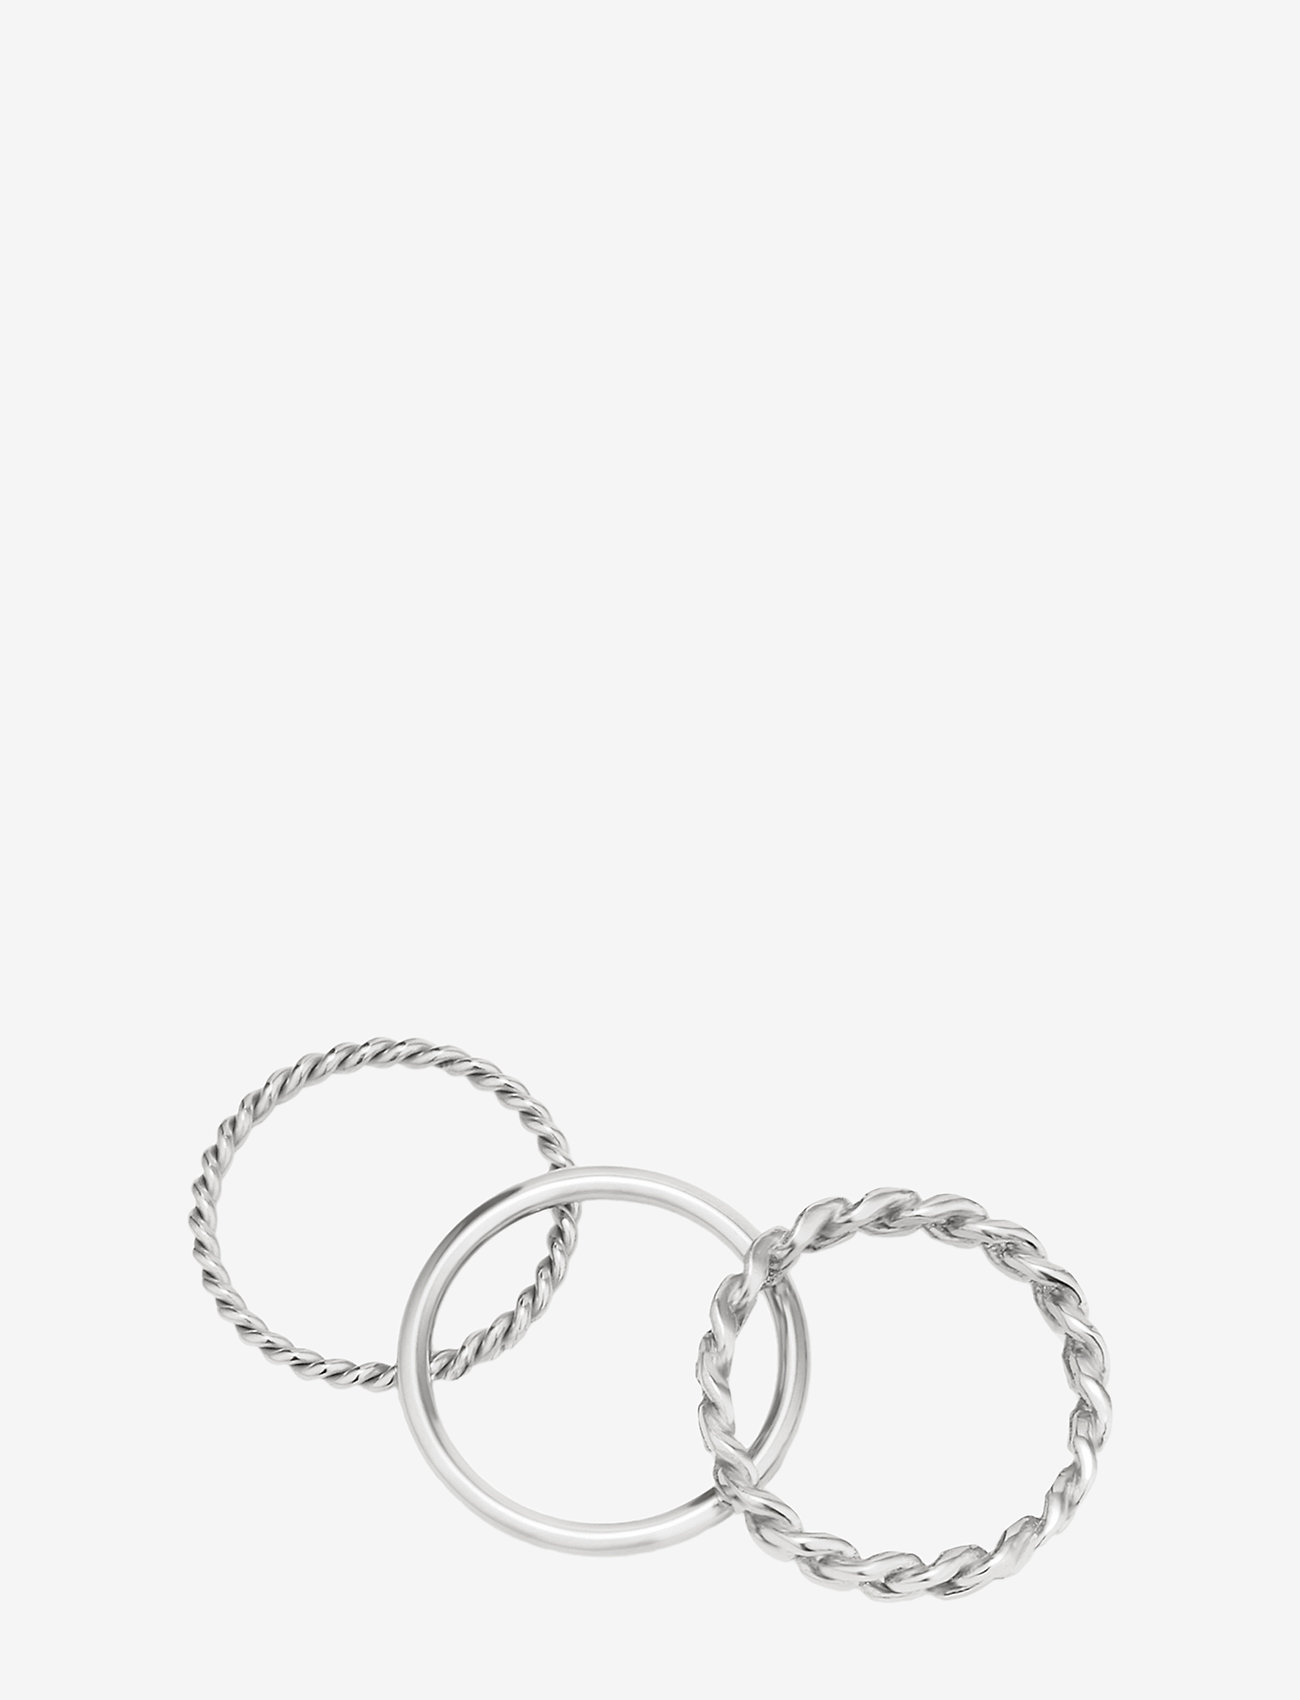 Bud to rose - Chain Trio Ring Steel - sormukset - silver - 1